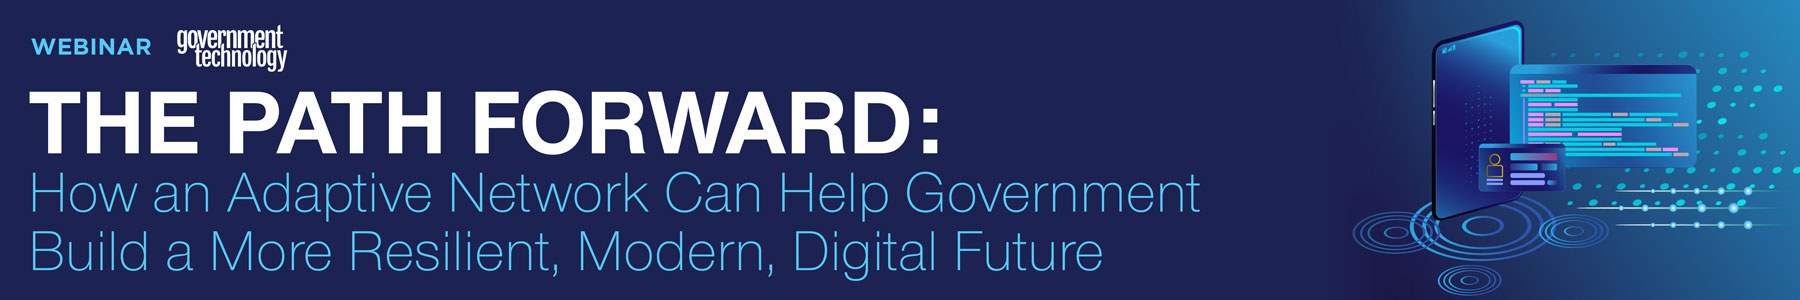 The Path Forward: How an Adaptive Network Can Help Government Build a More Resilient, Modern, Digital Future